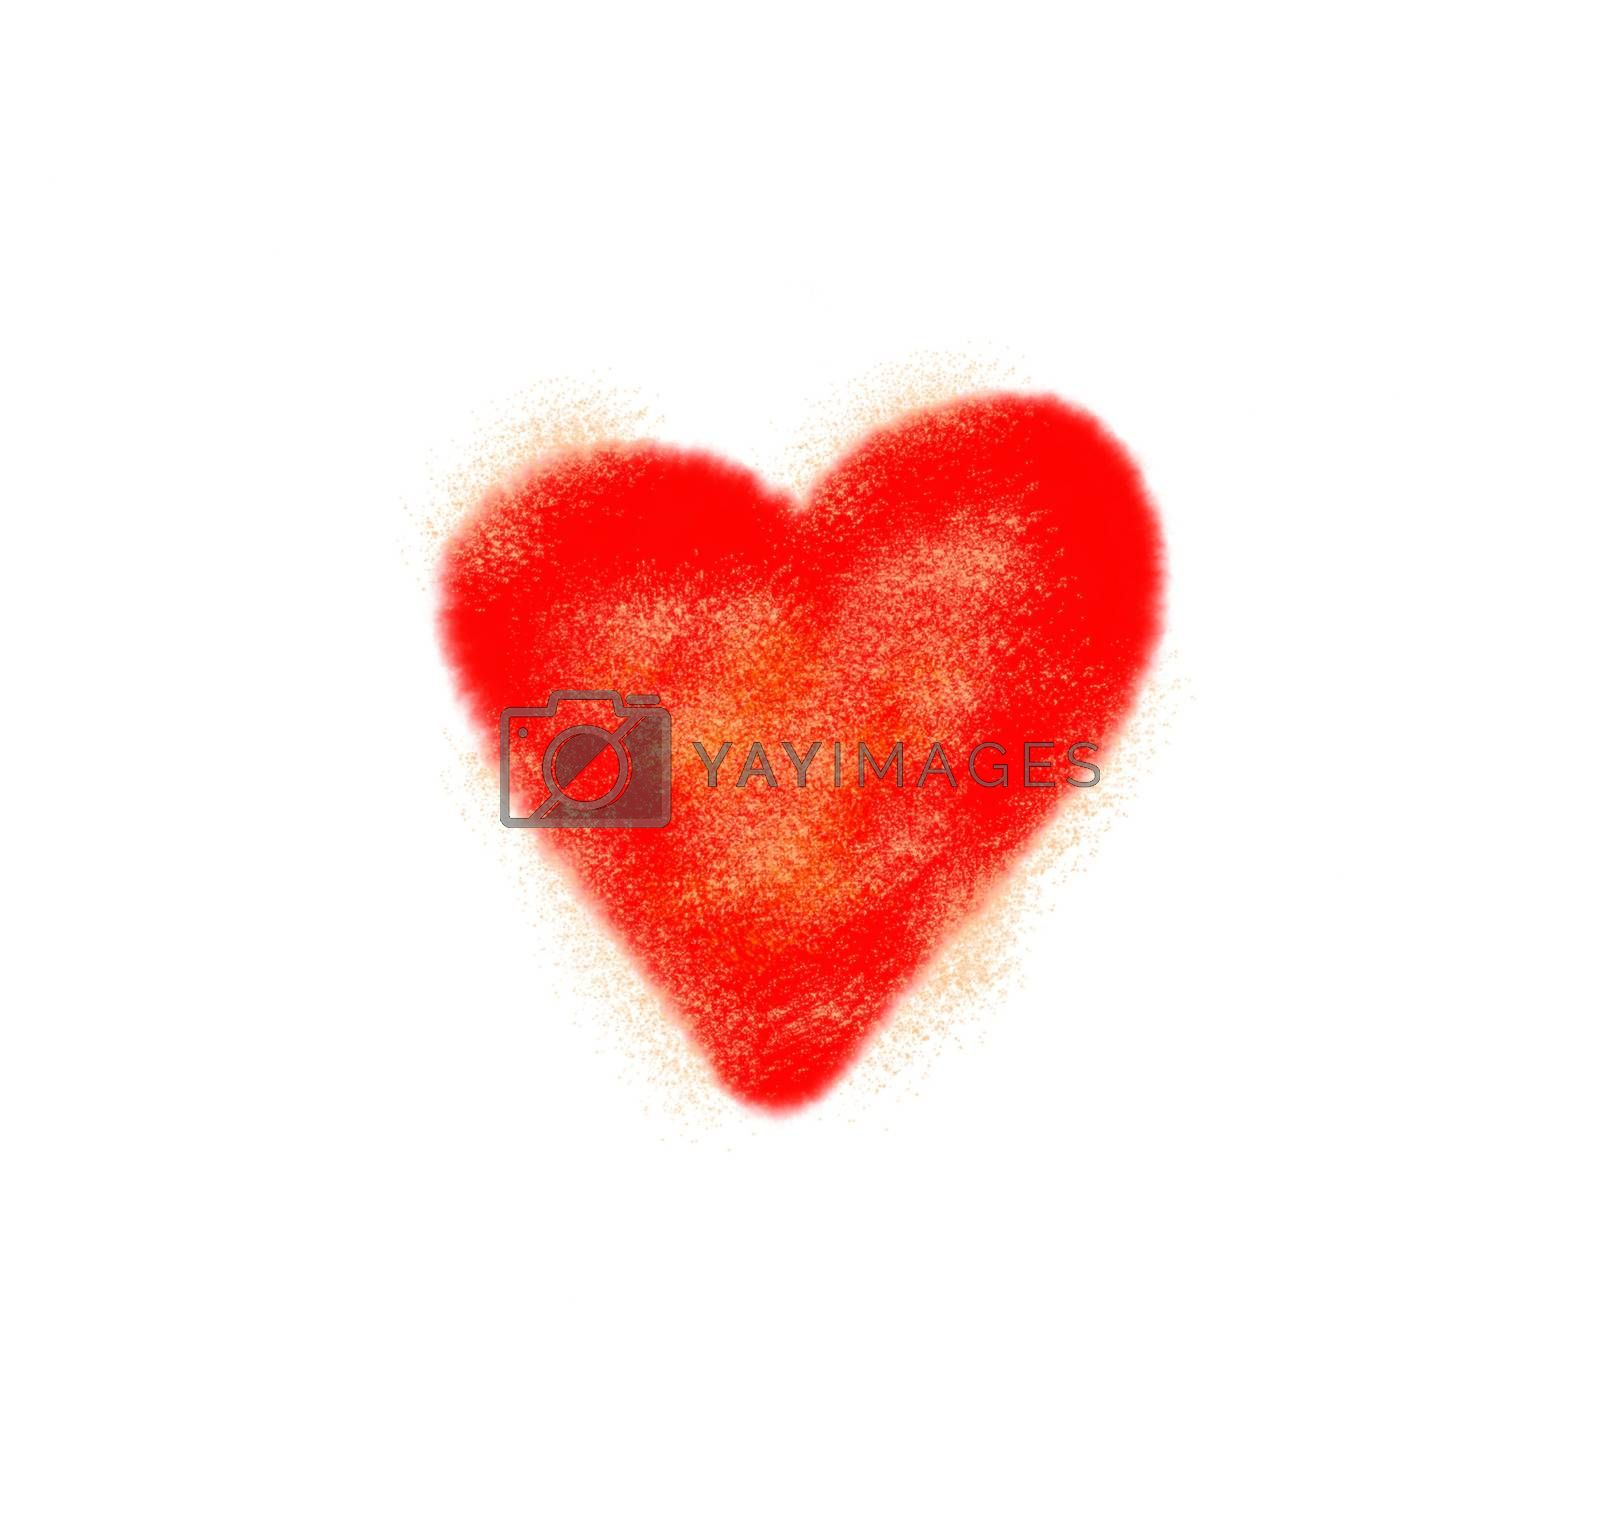 Abstract love symbol on white background